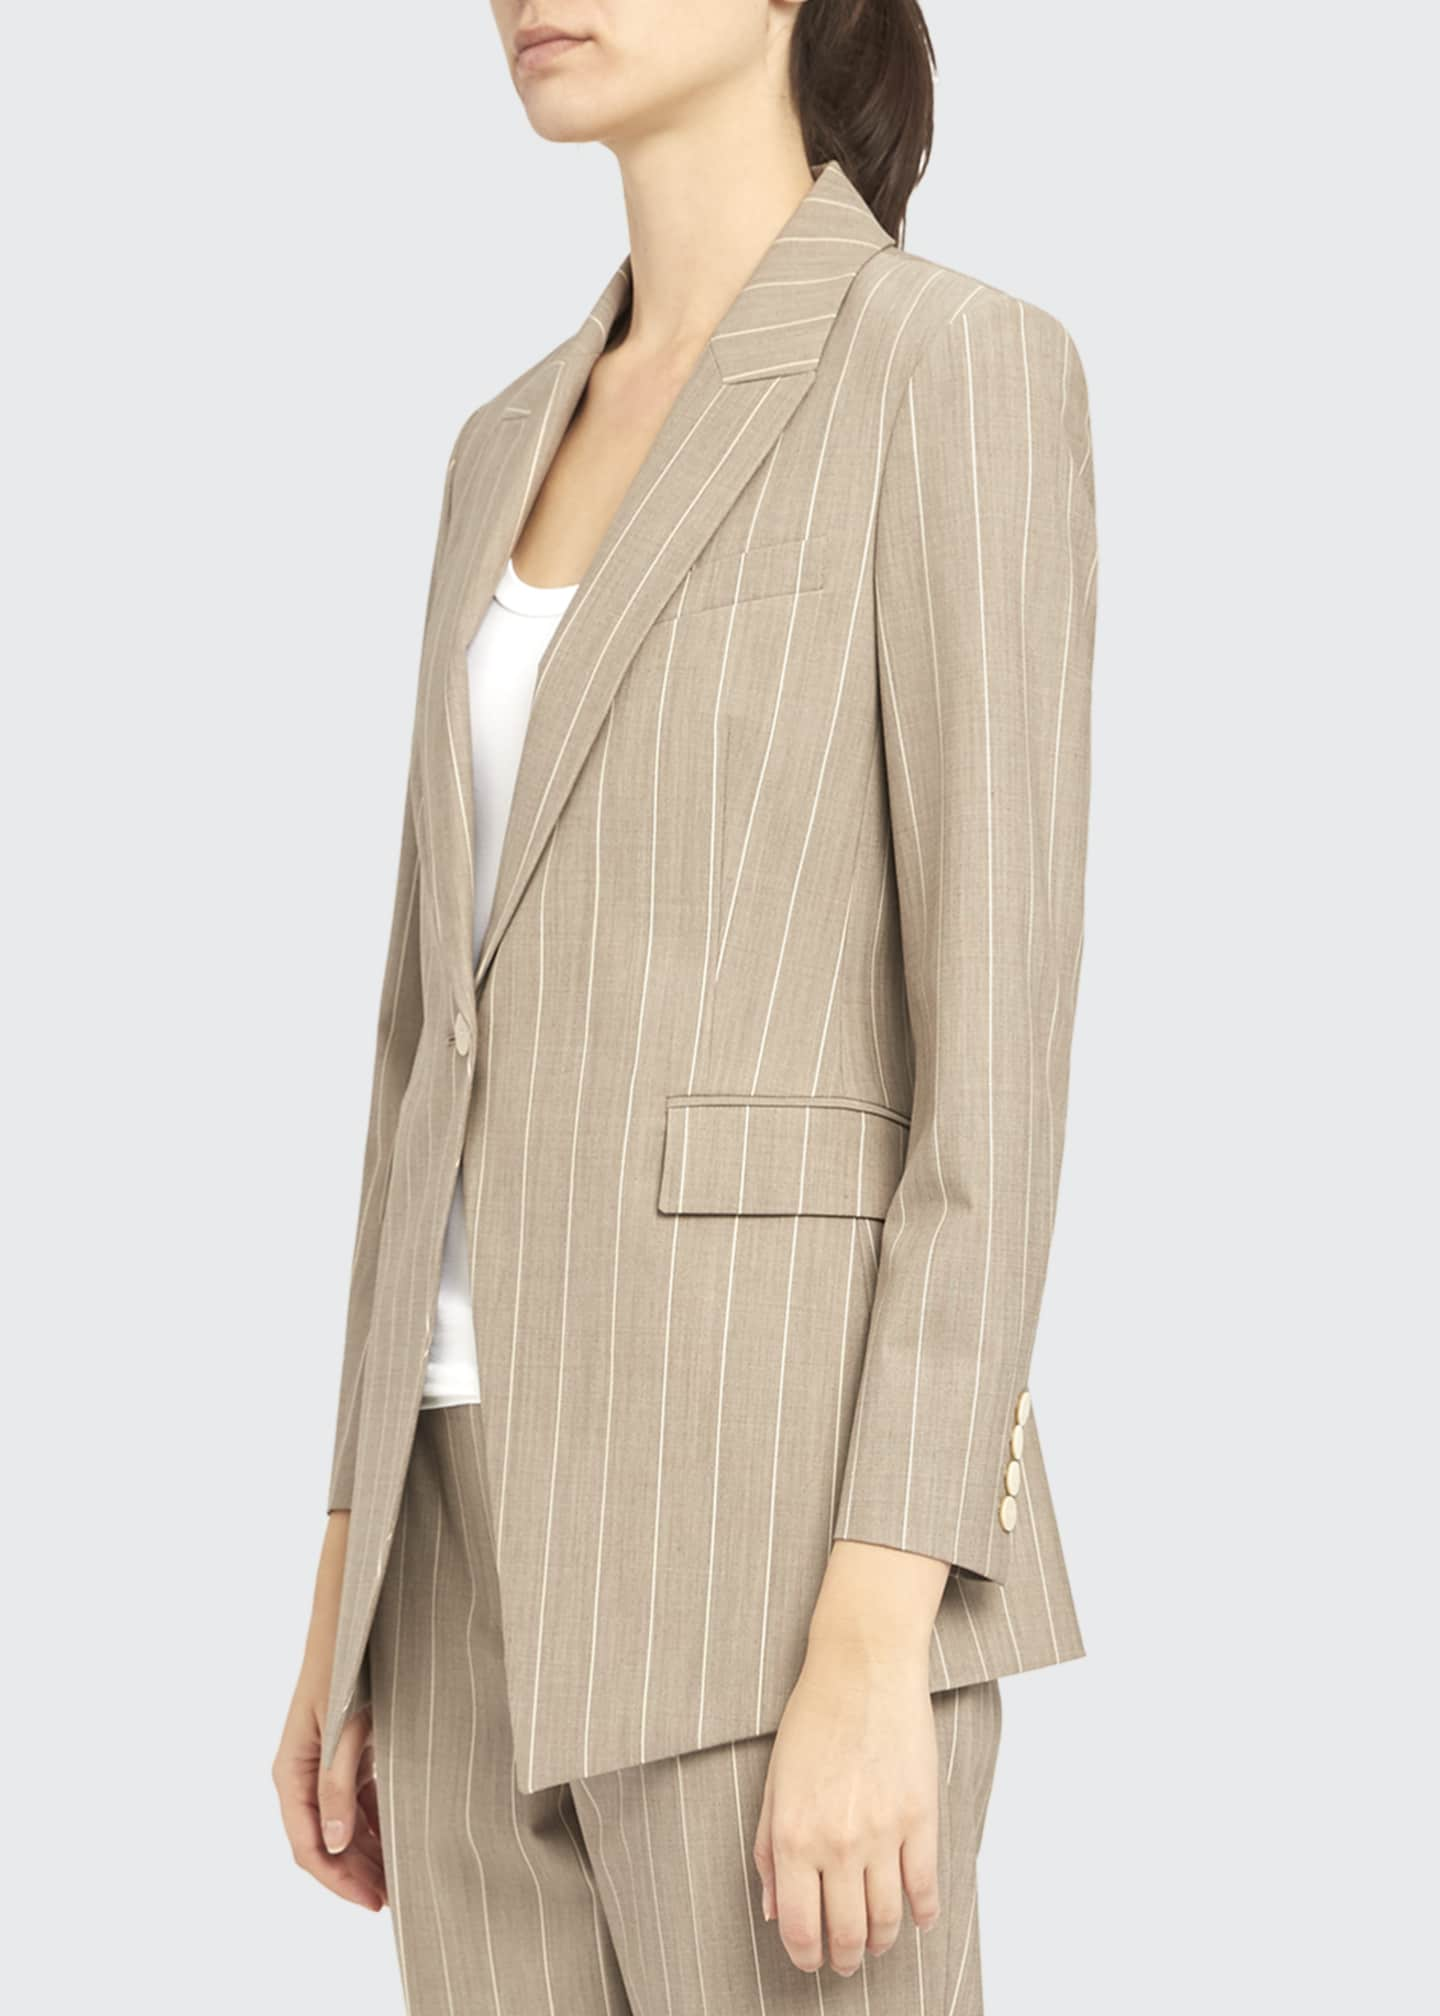 Image 4 of 4: Etiennette Traceable Wool Striped Blazer